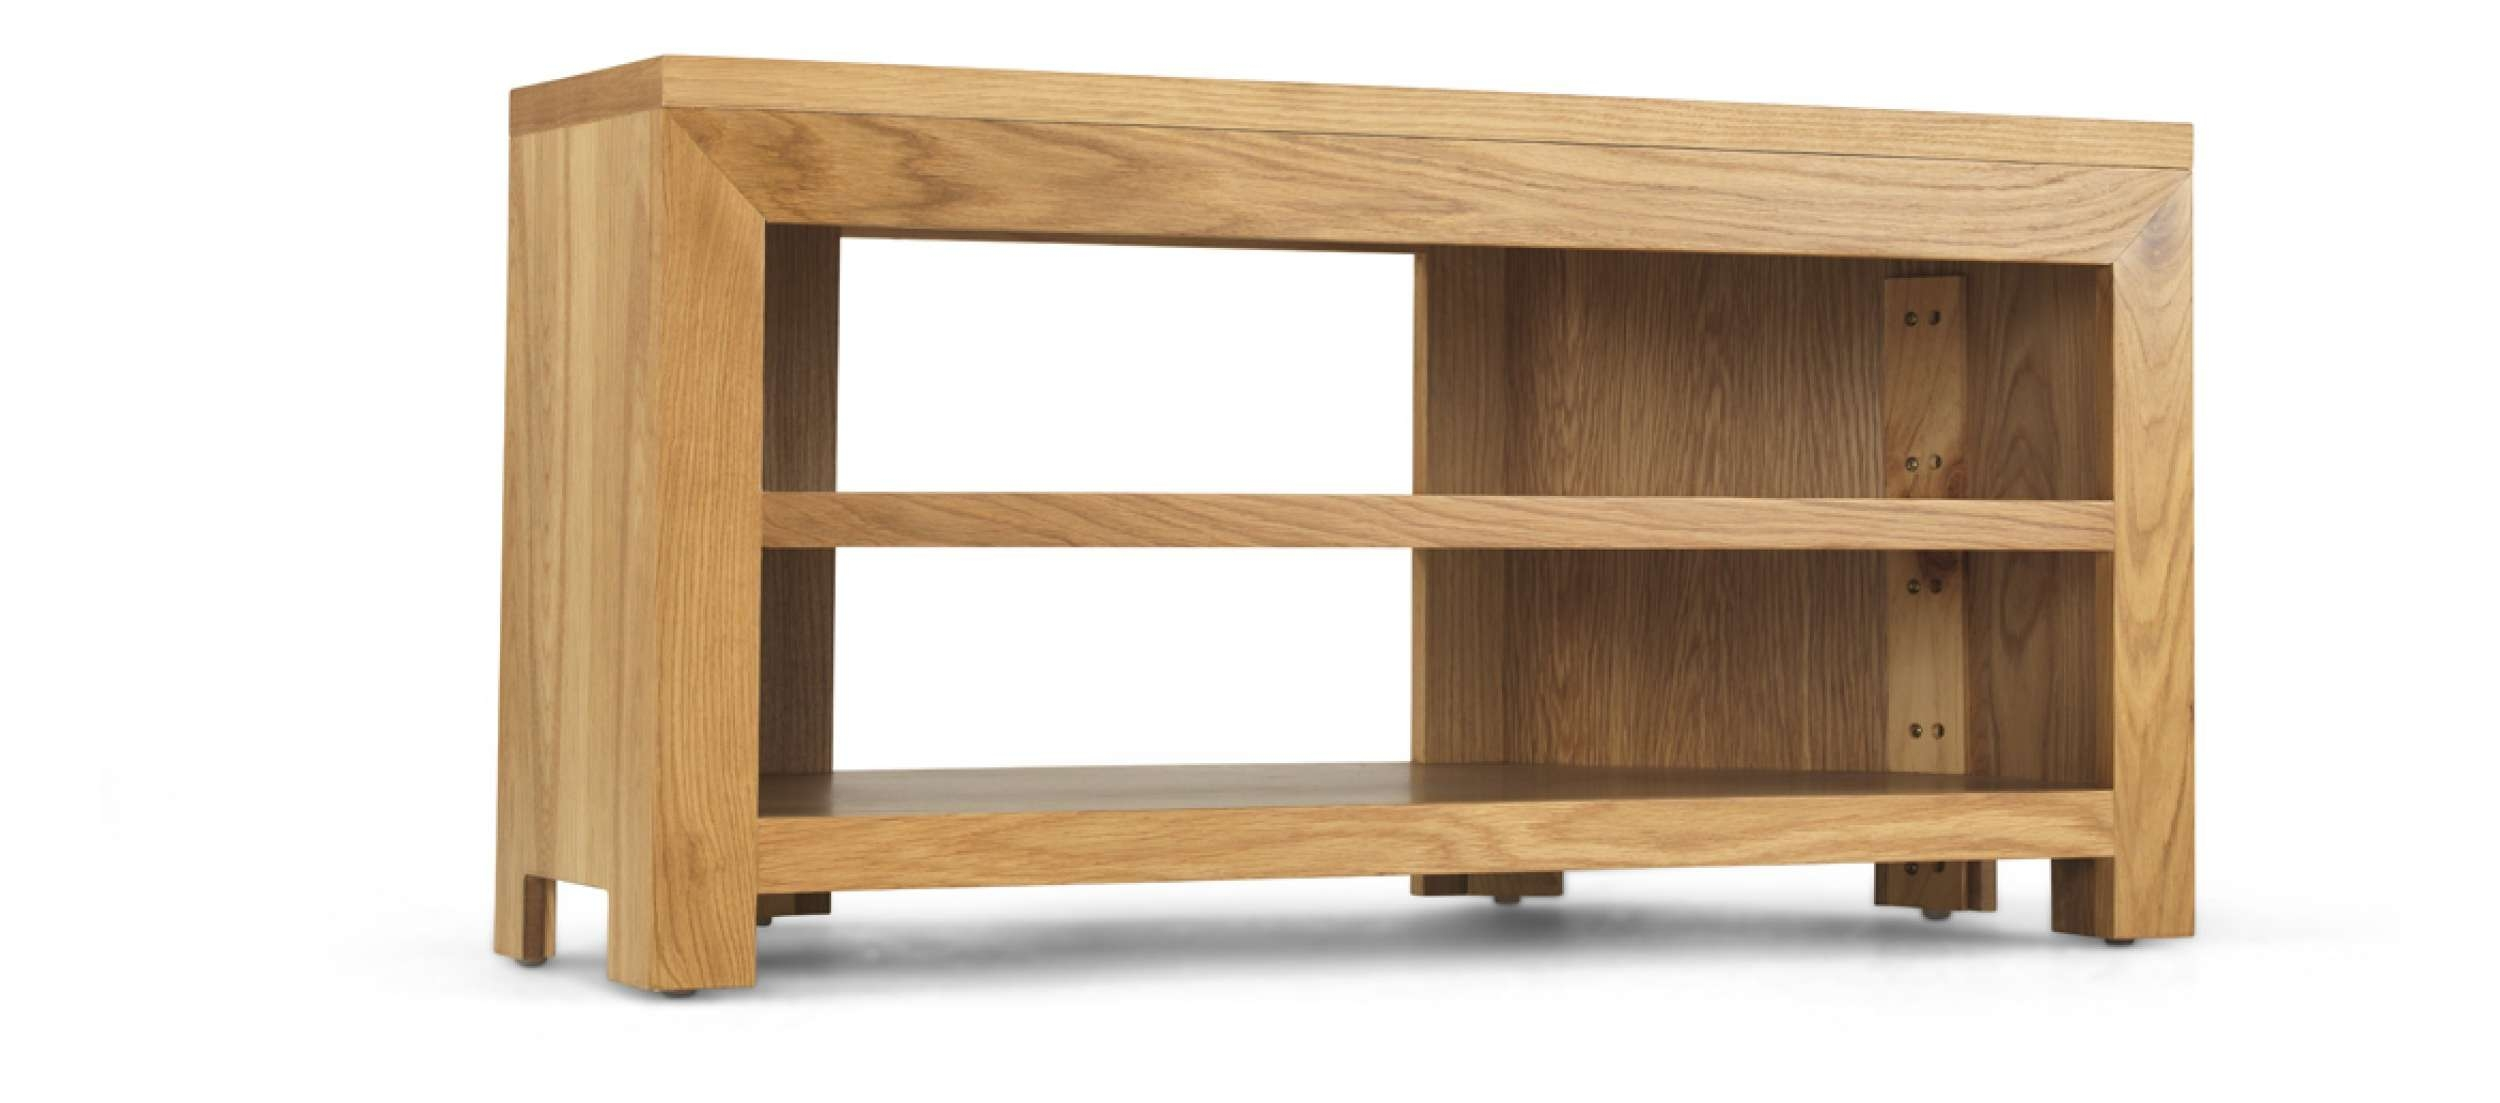 Cube Oak Open Corner Tv Unit | Quercus Living In Low Corner Tv Cabinets (View 7 of 20)